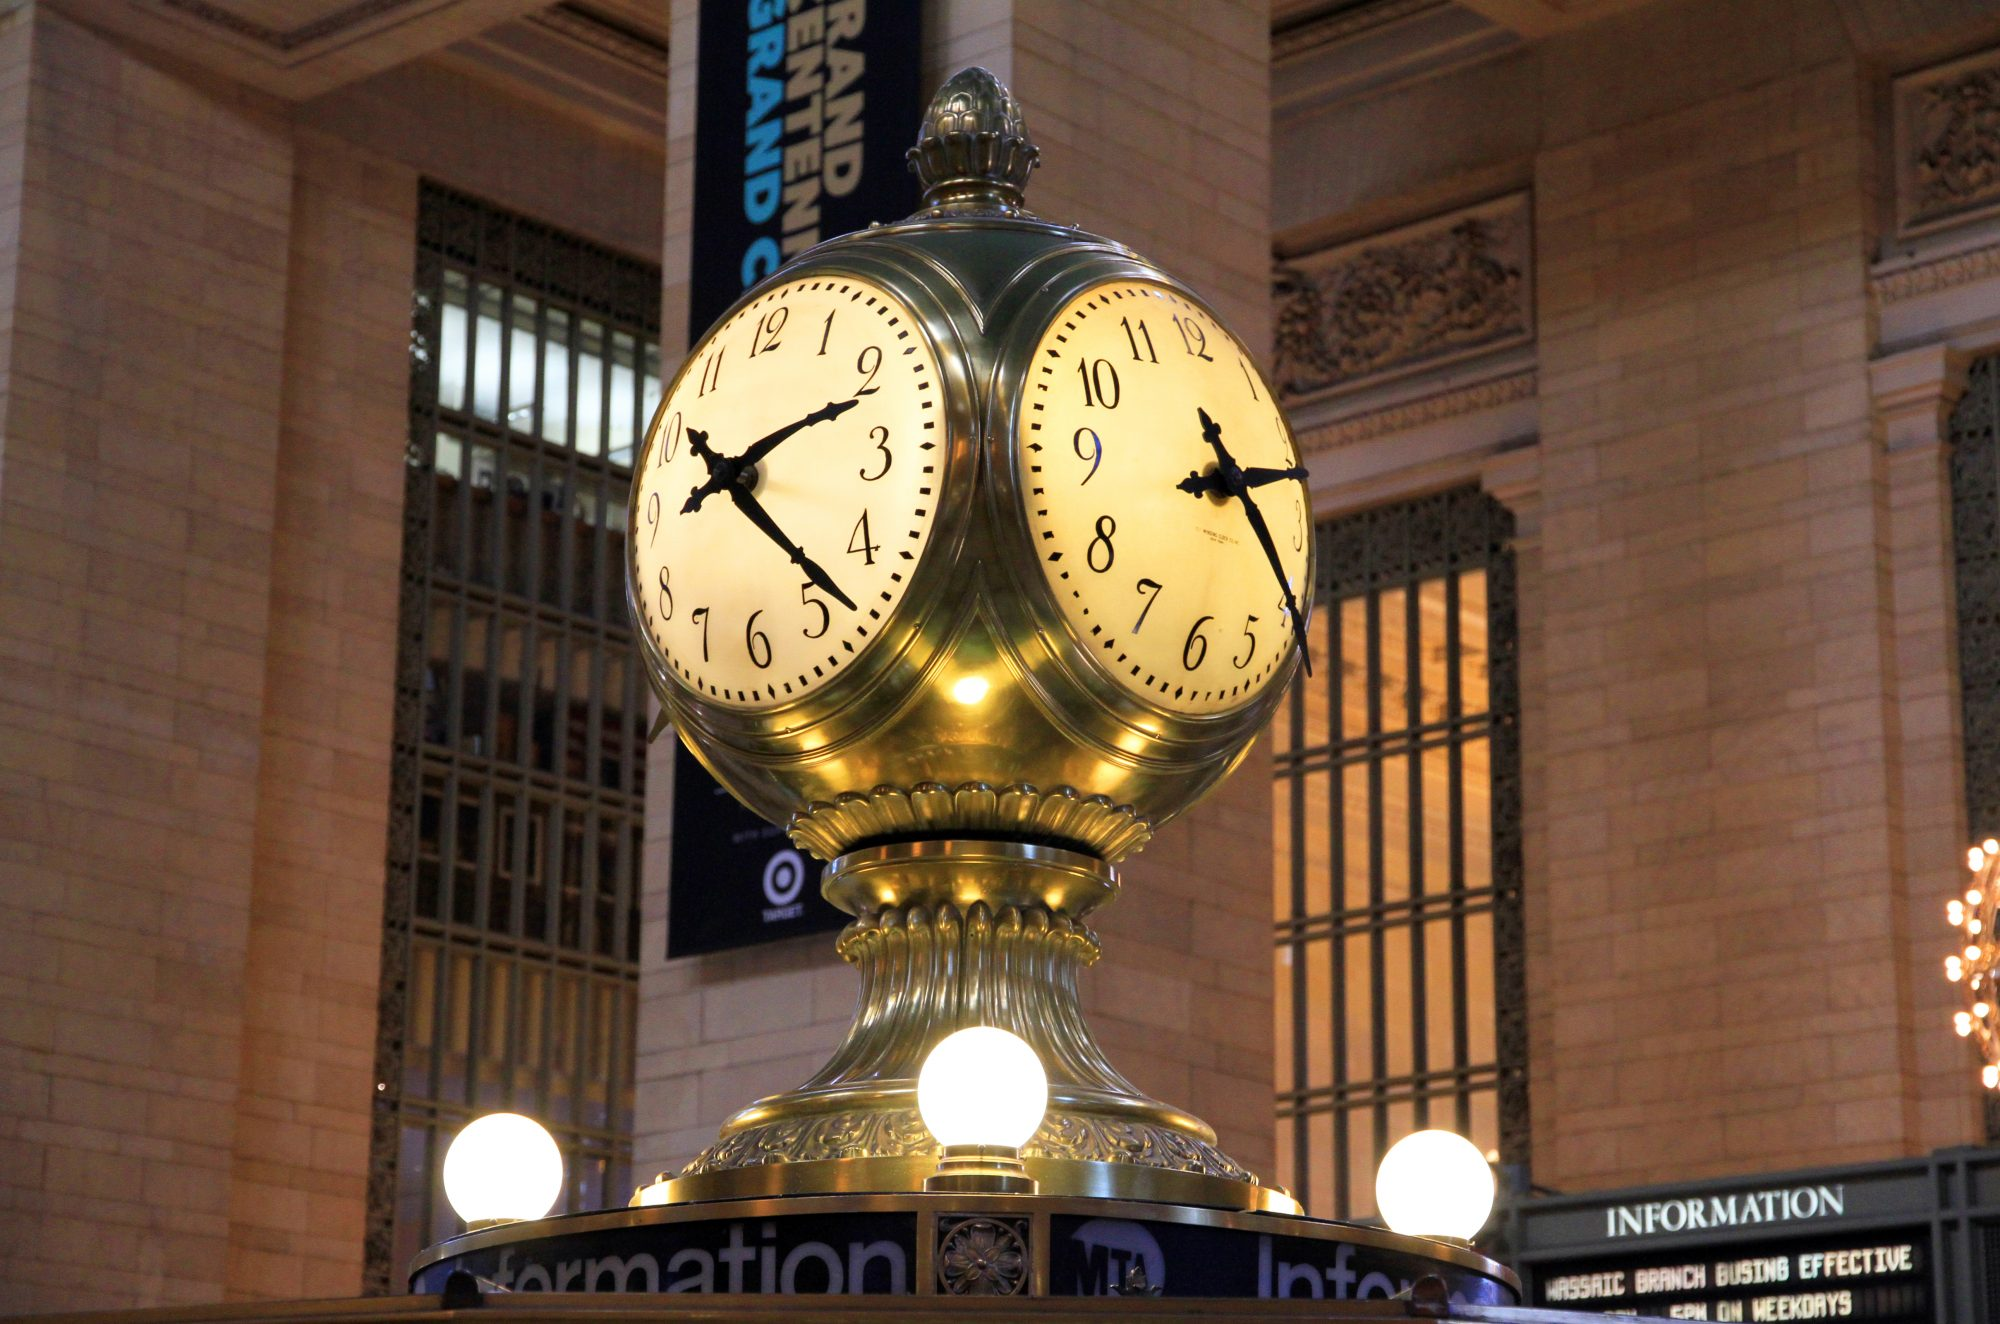 Grand-Central-Concourse-Clock-e1552068476223.jpg